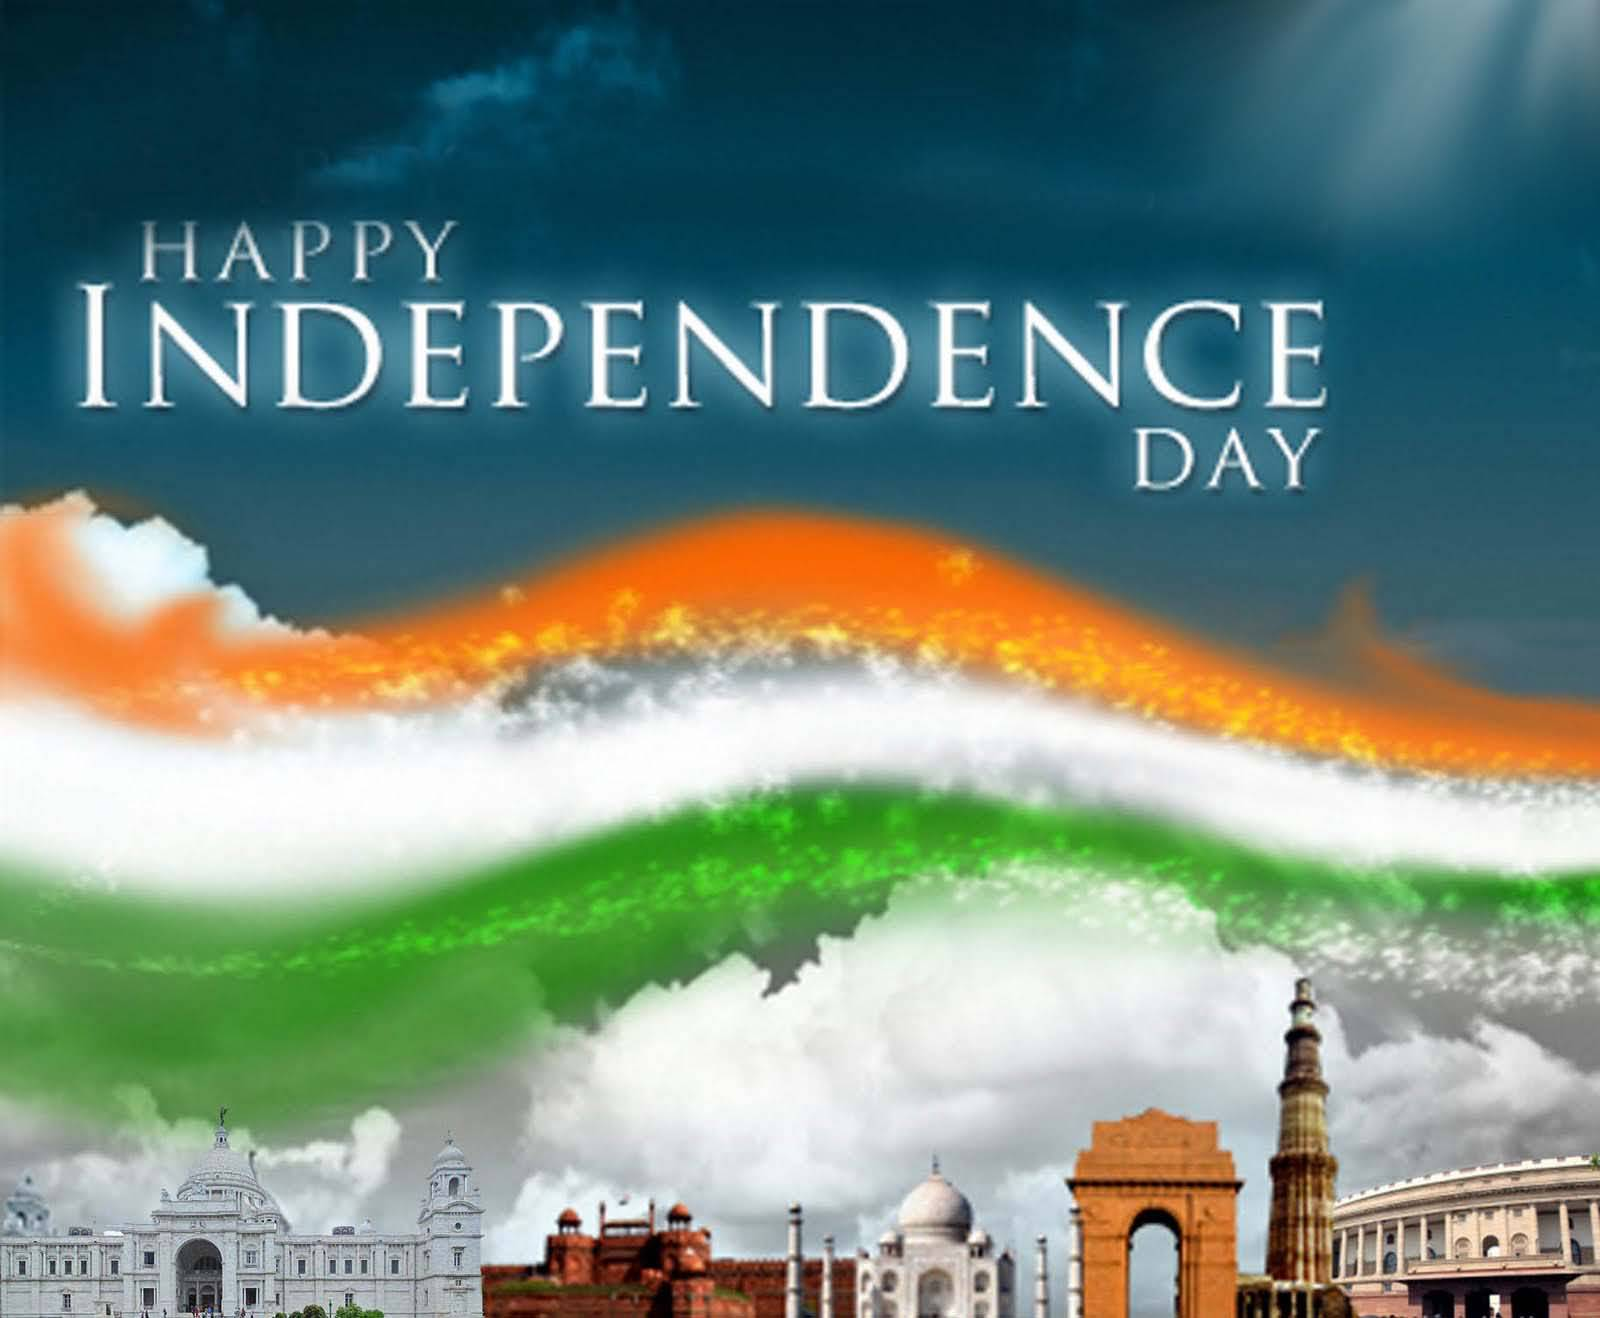 Happy Independence Day Greetings Wallpaper